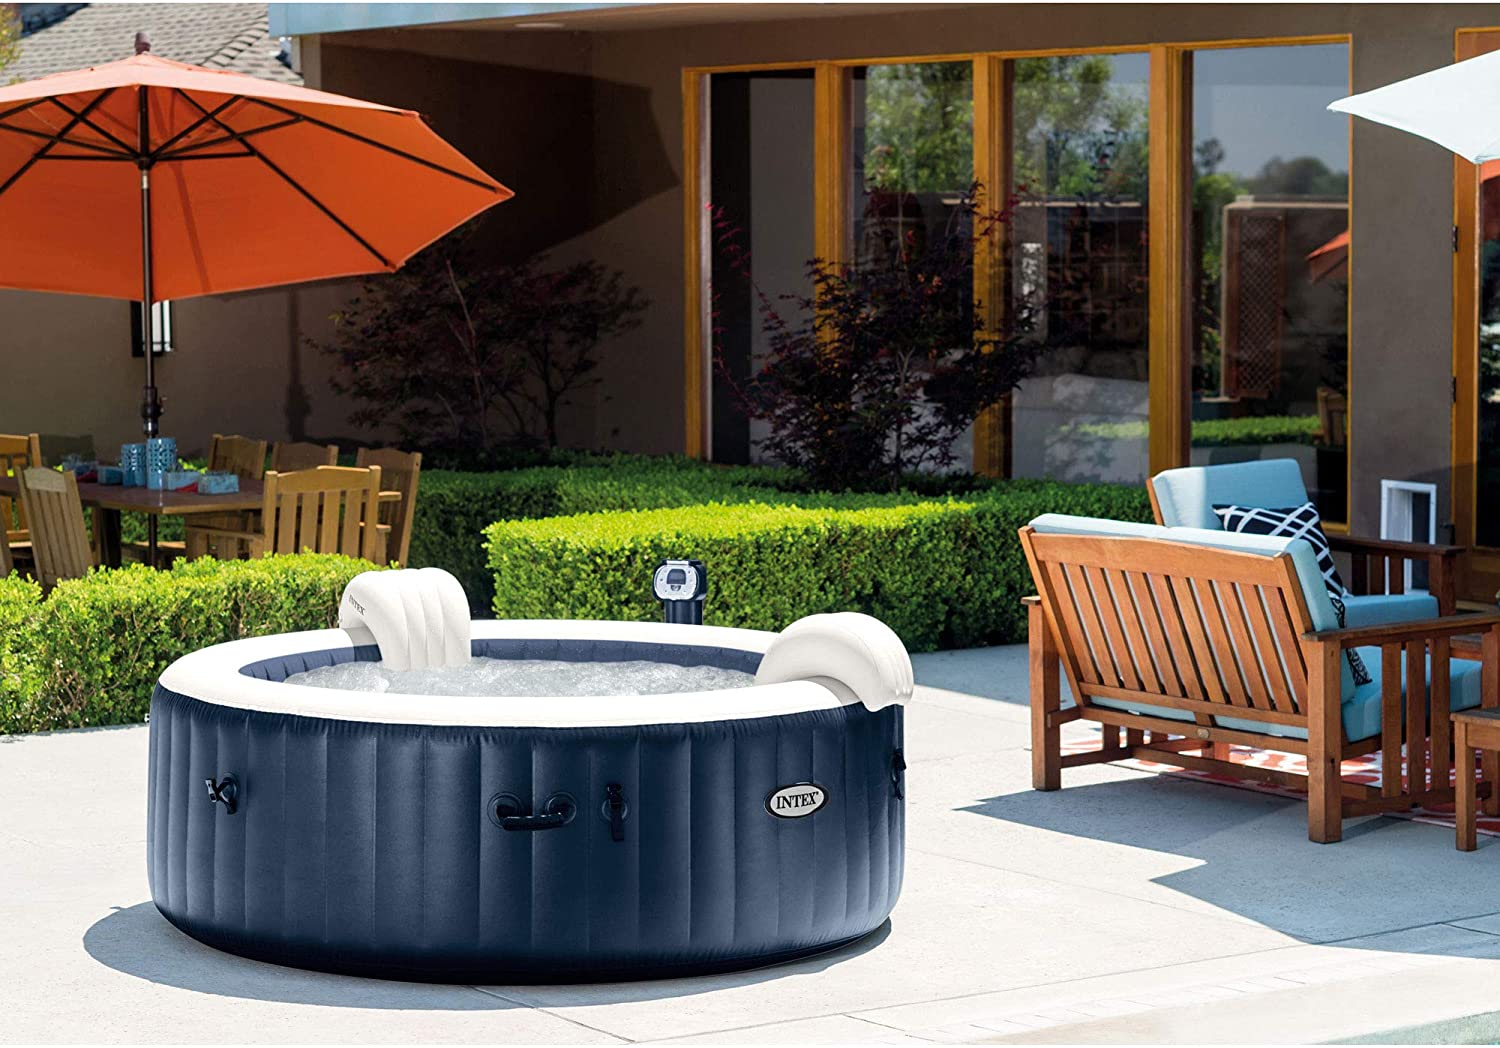 Blow up Hot Tub